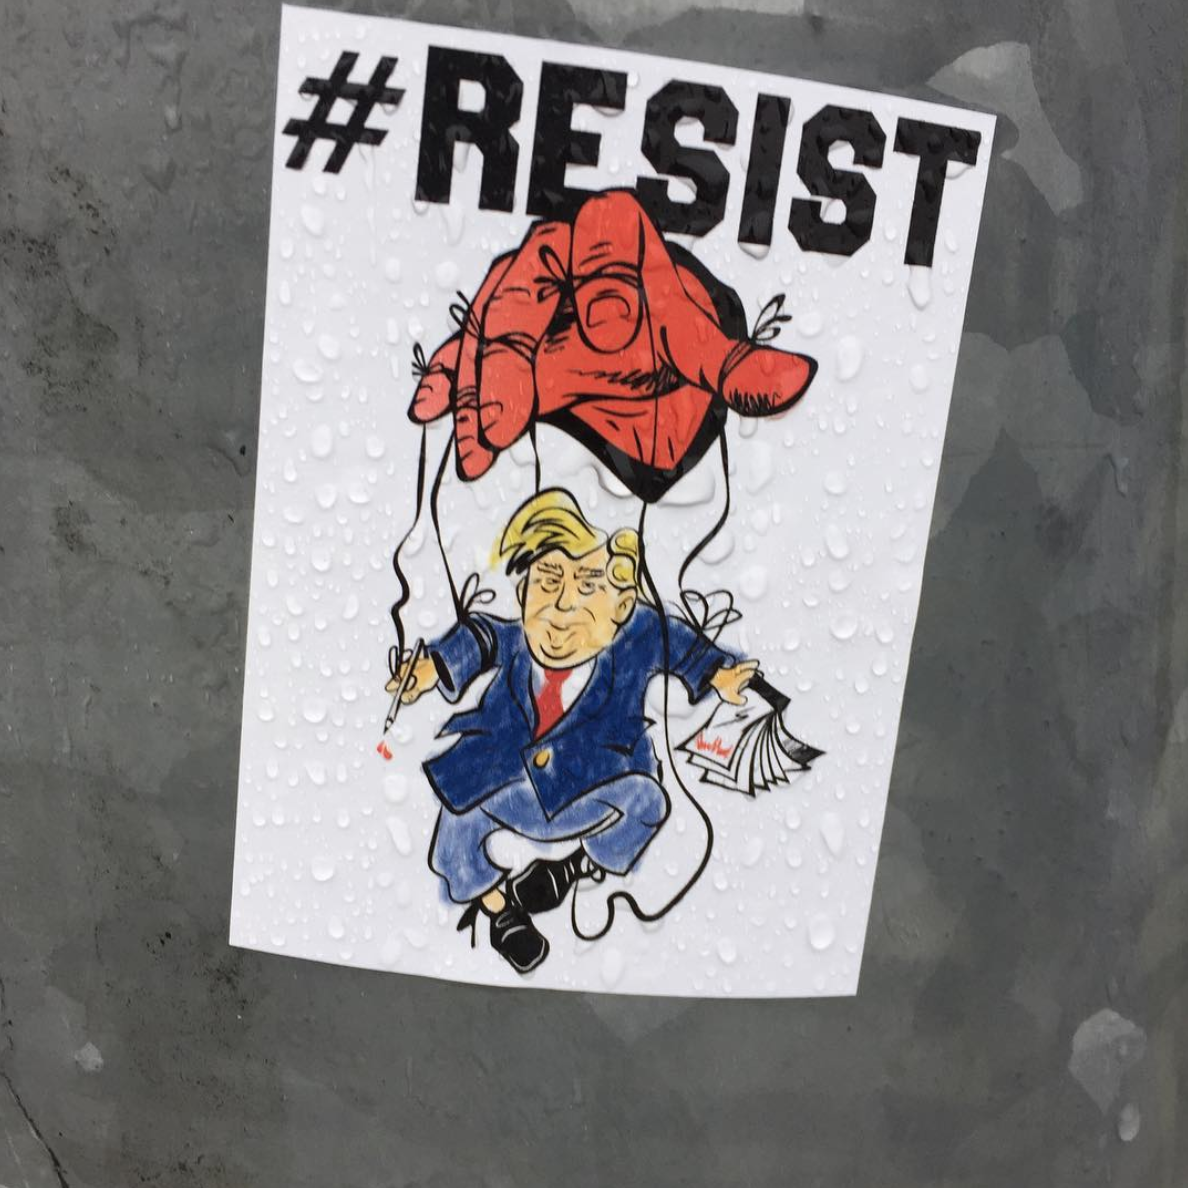 "Picture of President Trump as a marionette doll controlled by a red hand with the caption ""#RESIST"""